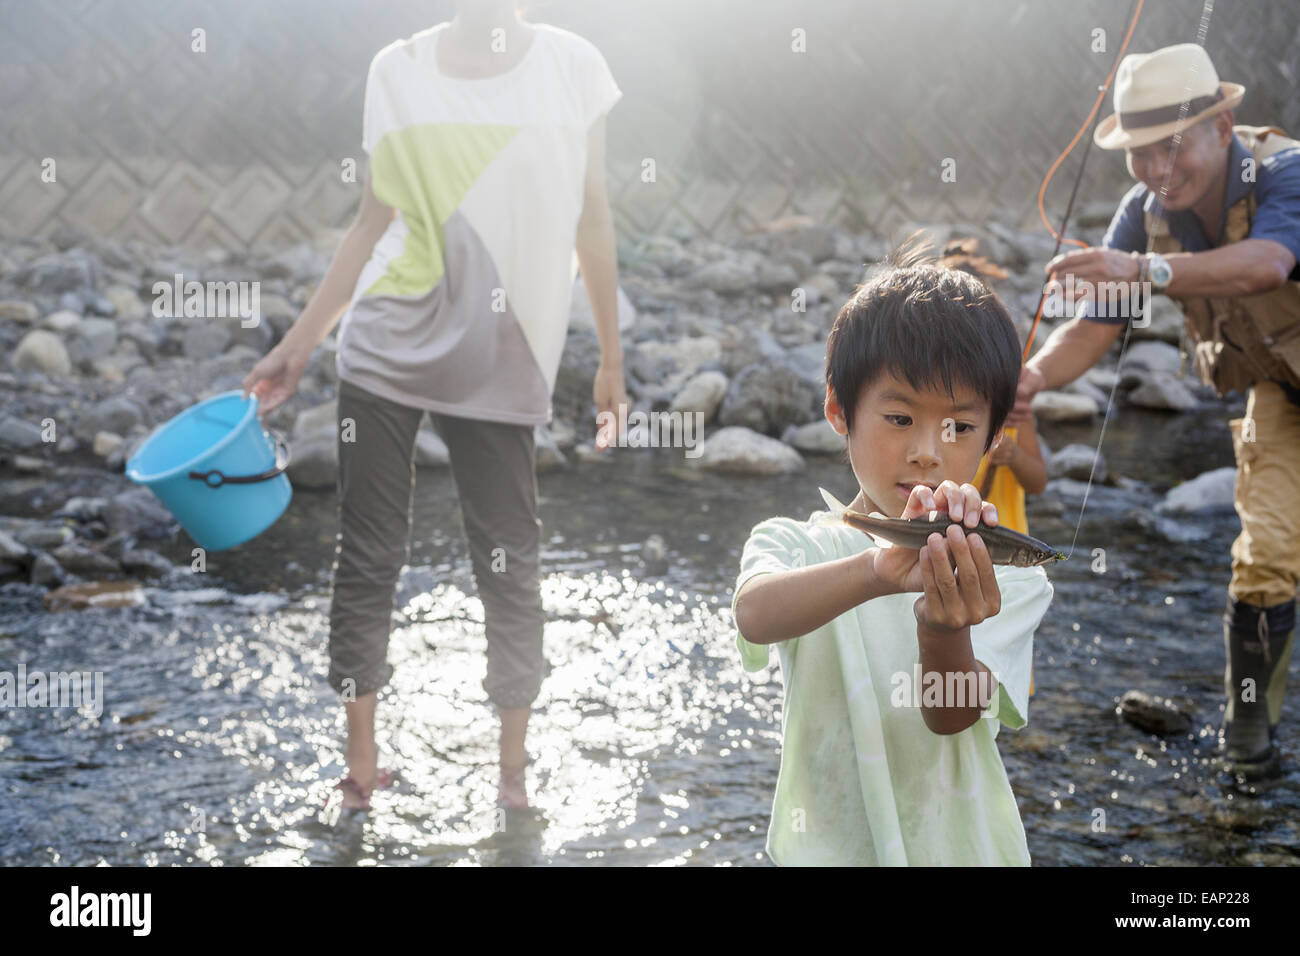 Family fishing in a stream. Stock Photo